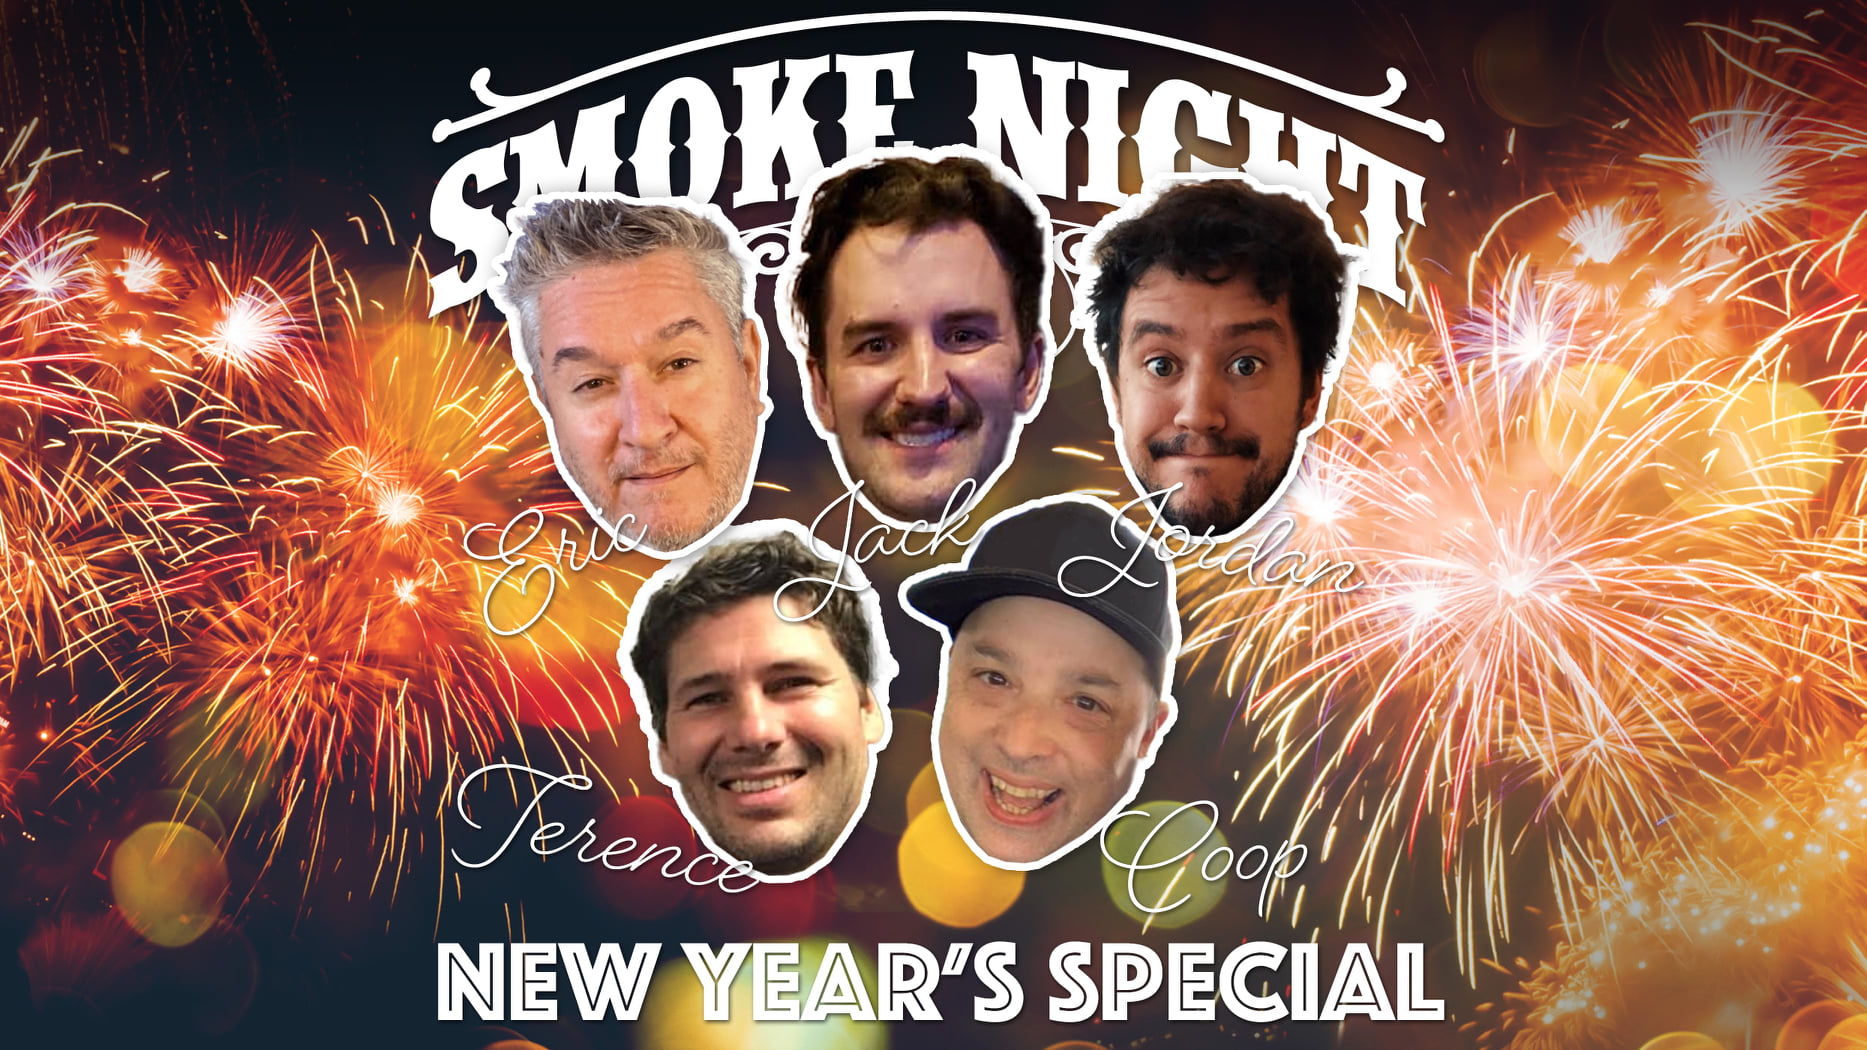 The Blog: Will Cooper Guests on Smoke Night Live's New Year's Special